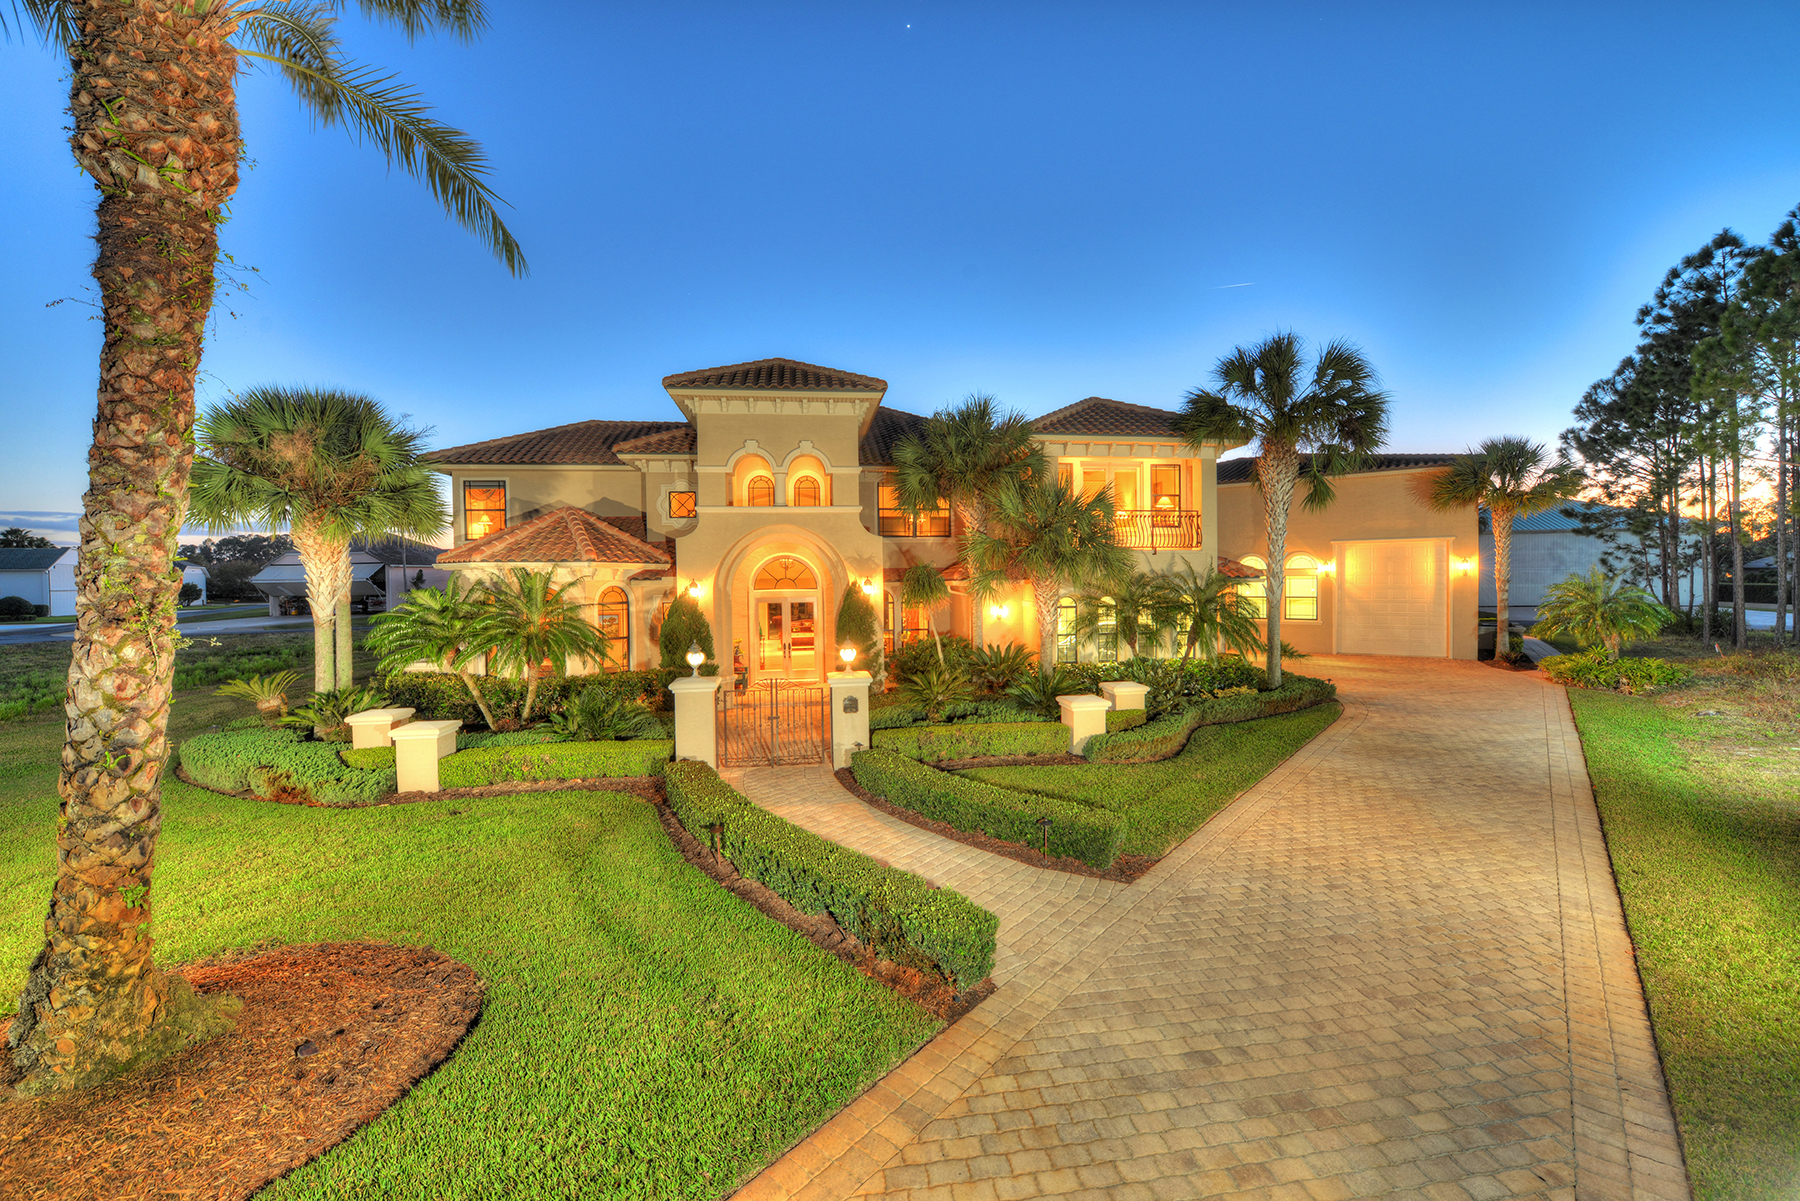 Single Family Home for Sale at SPRUCE CREEK AND THE BEACHES 1809 Avanti Ct, Port Orange, Florida 32128 United States